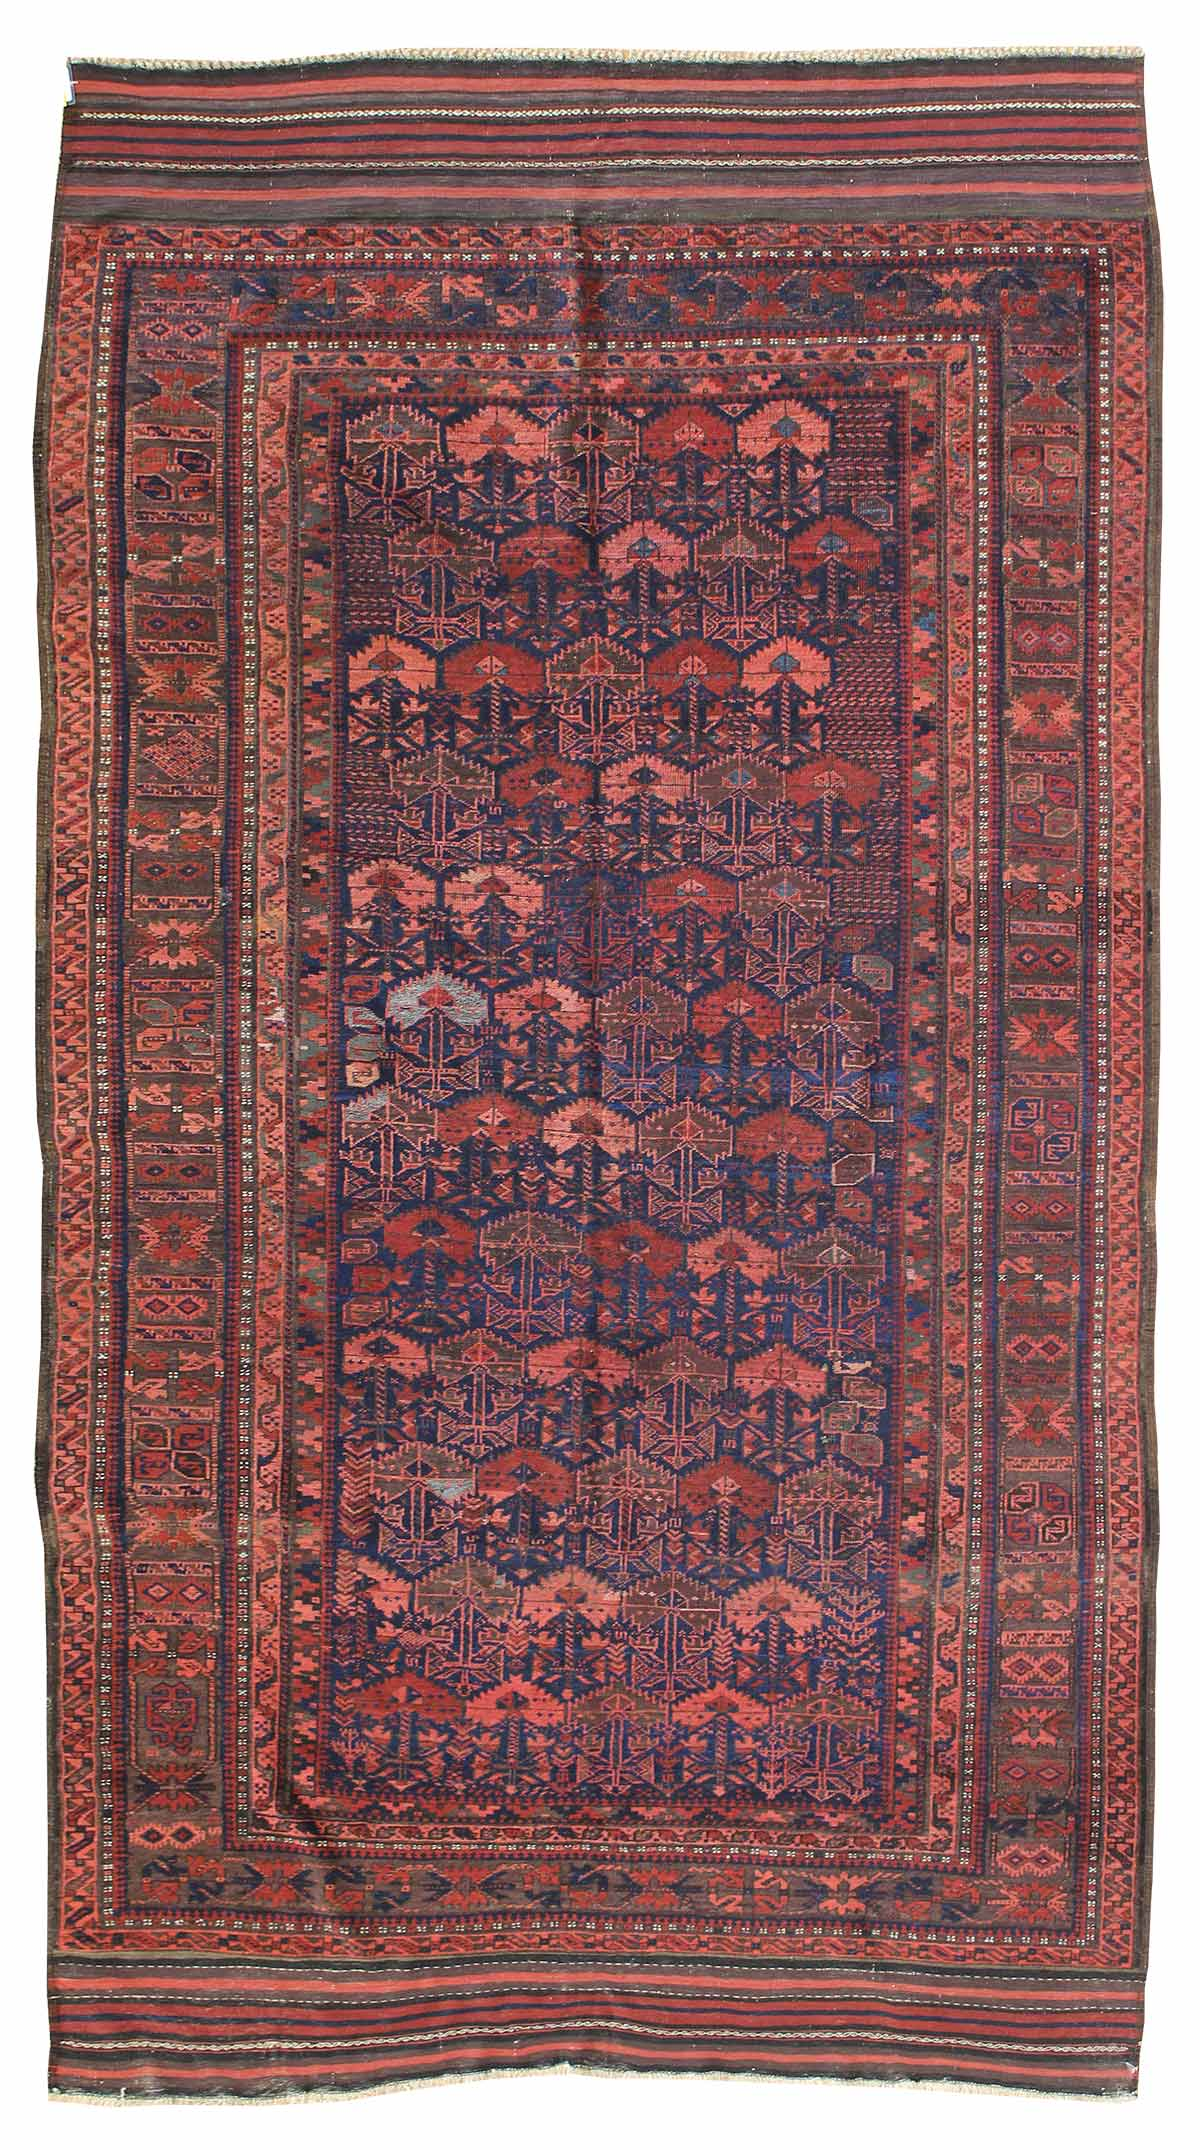 Antique Baluchi Handwoven Tribal Rug